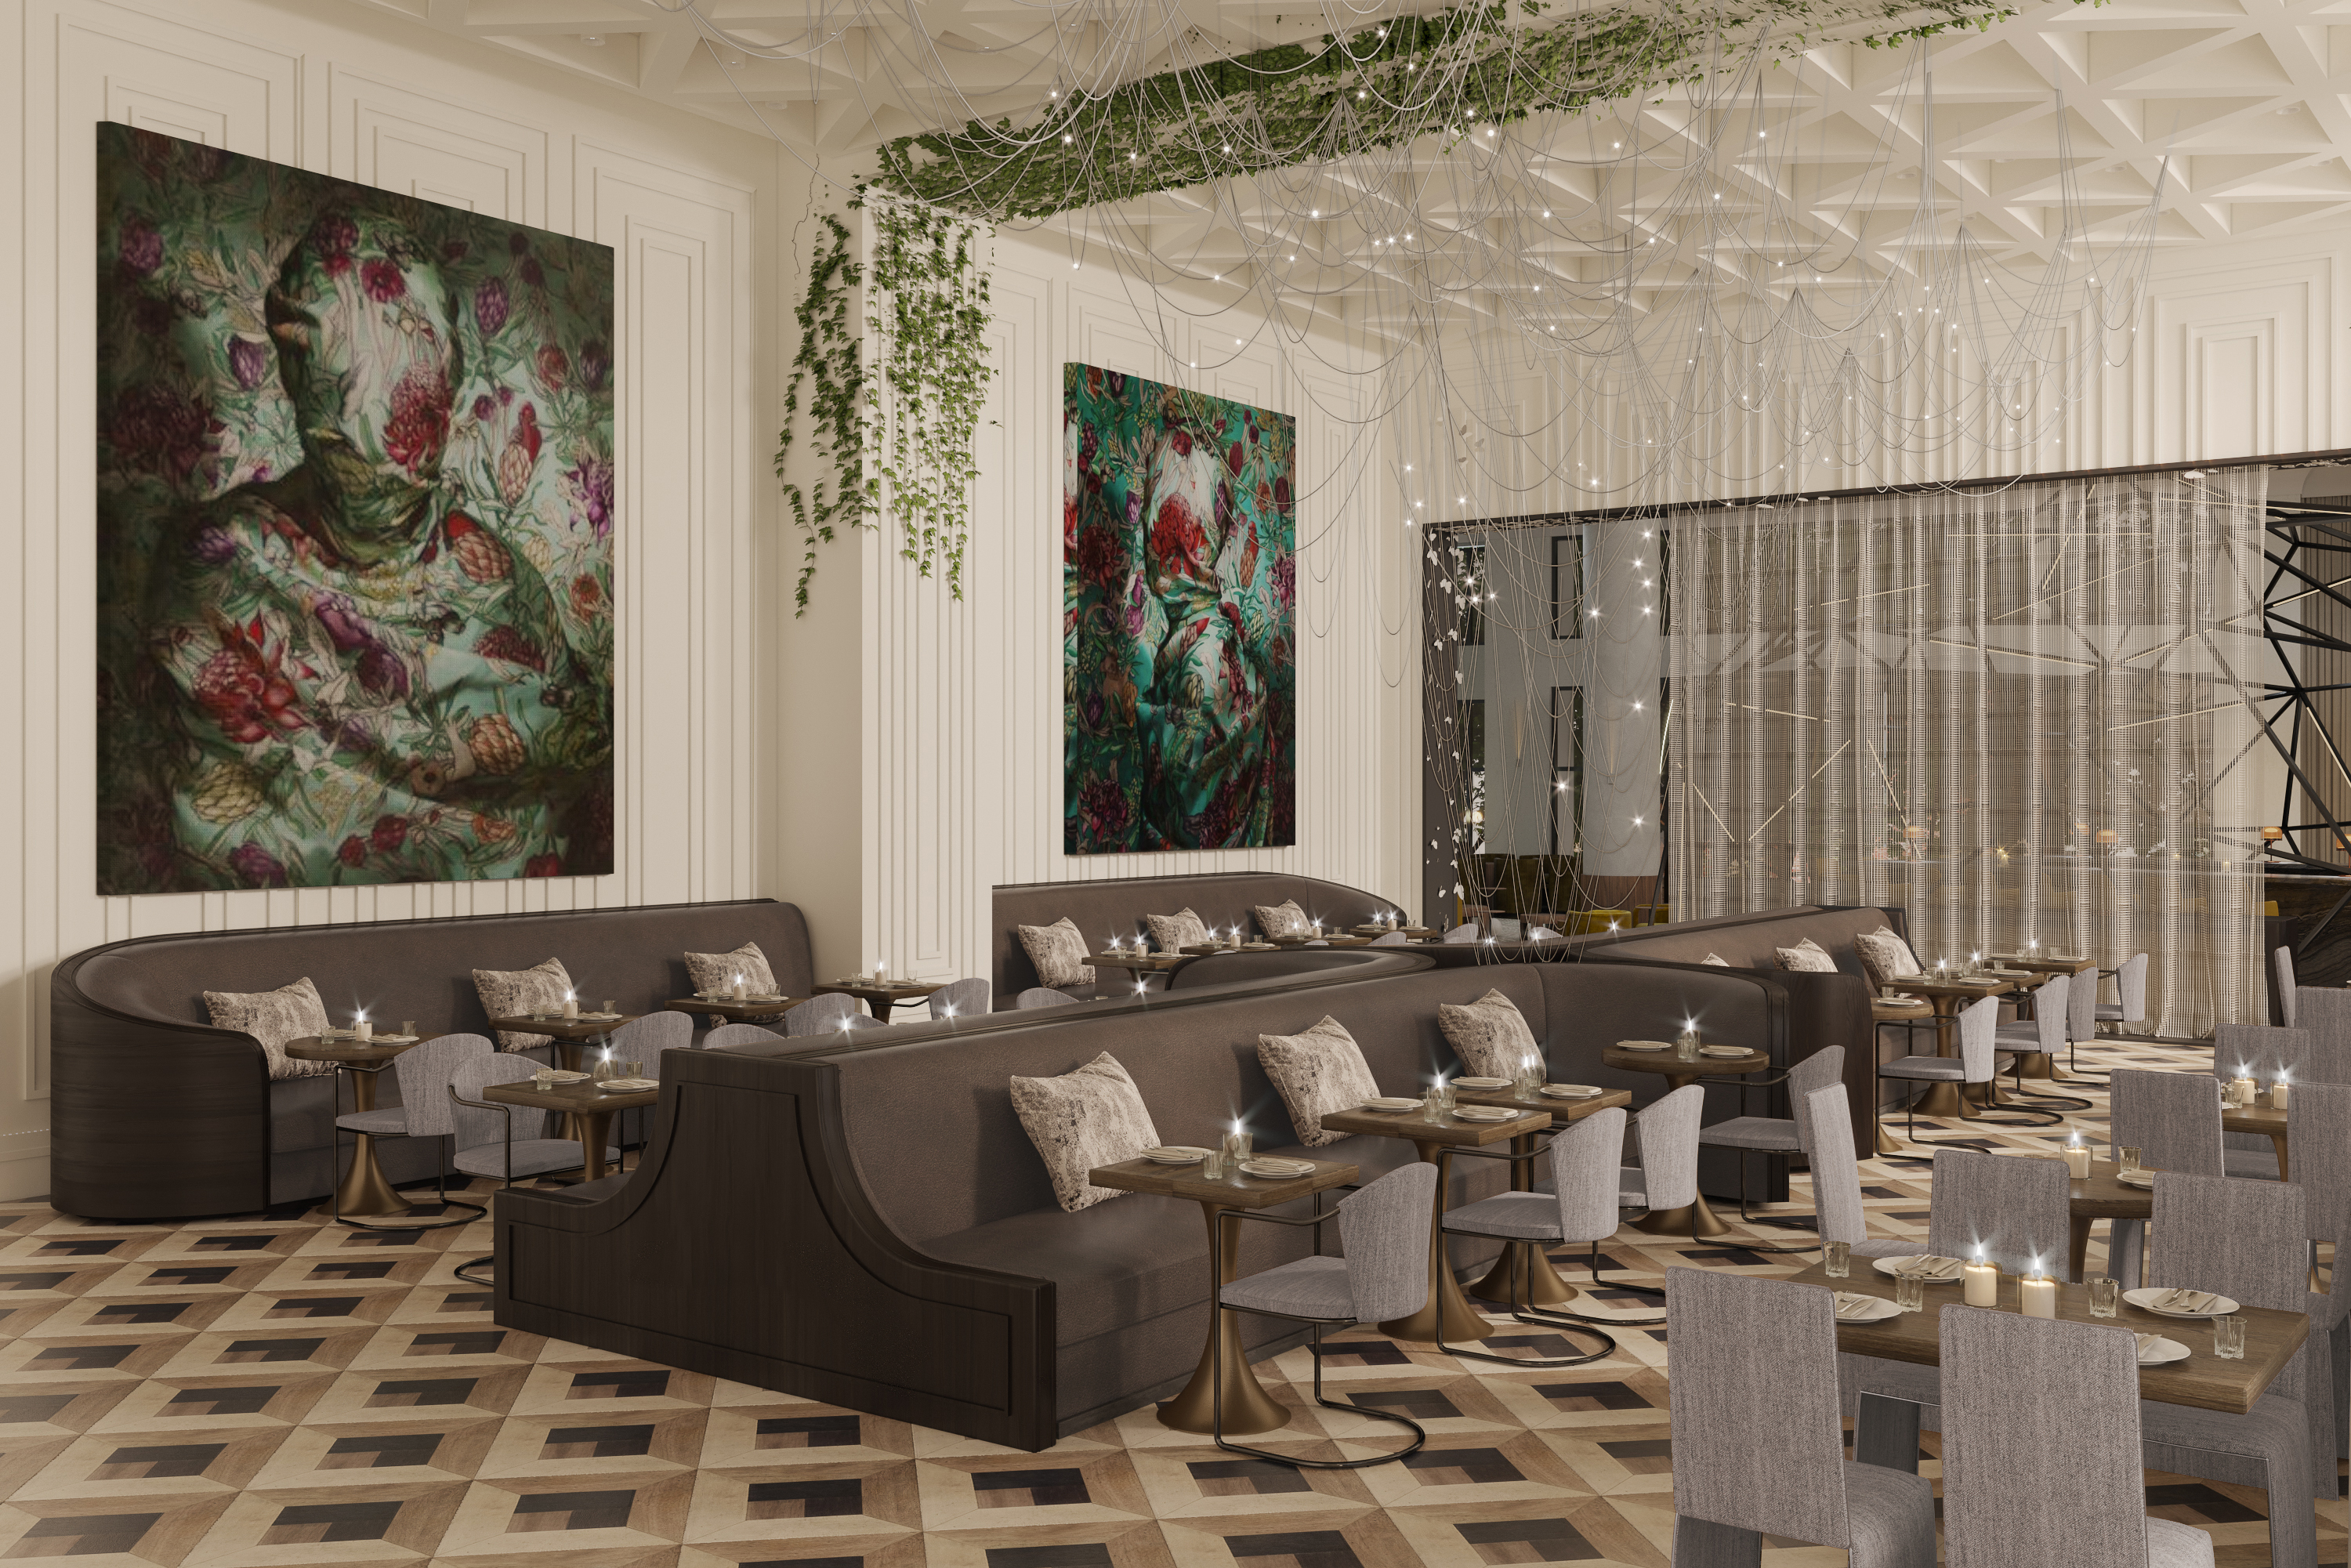 A large restaurant with high ceilings, white walls with large art pieces hanging on them, and patterned wood floors. Gray banquettes and chairs fill the dining room.